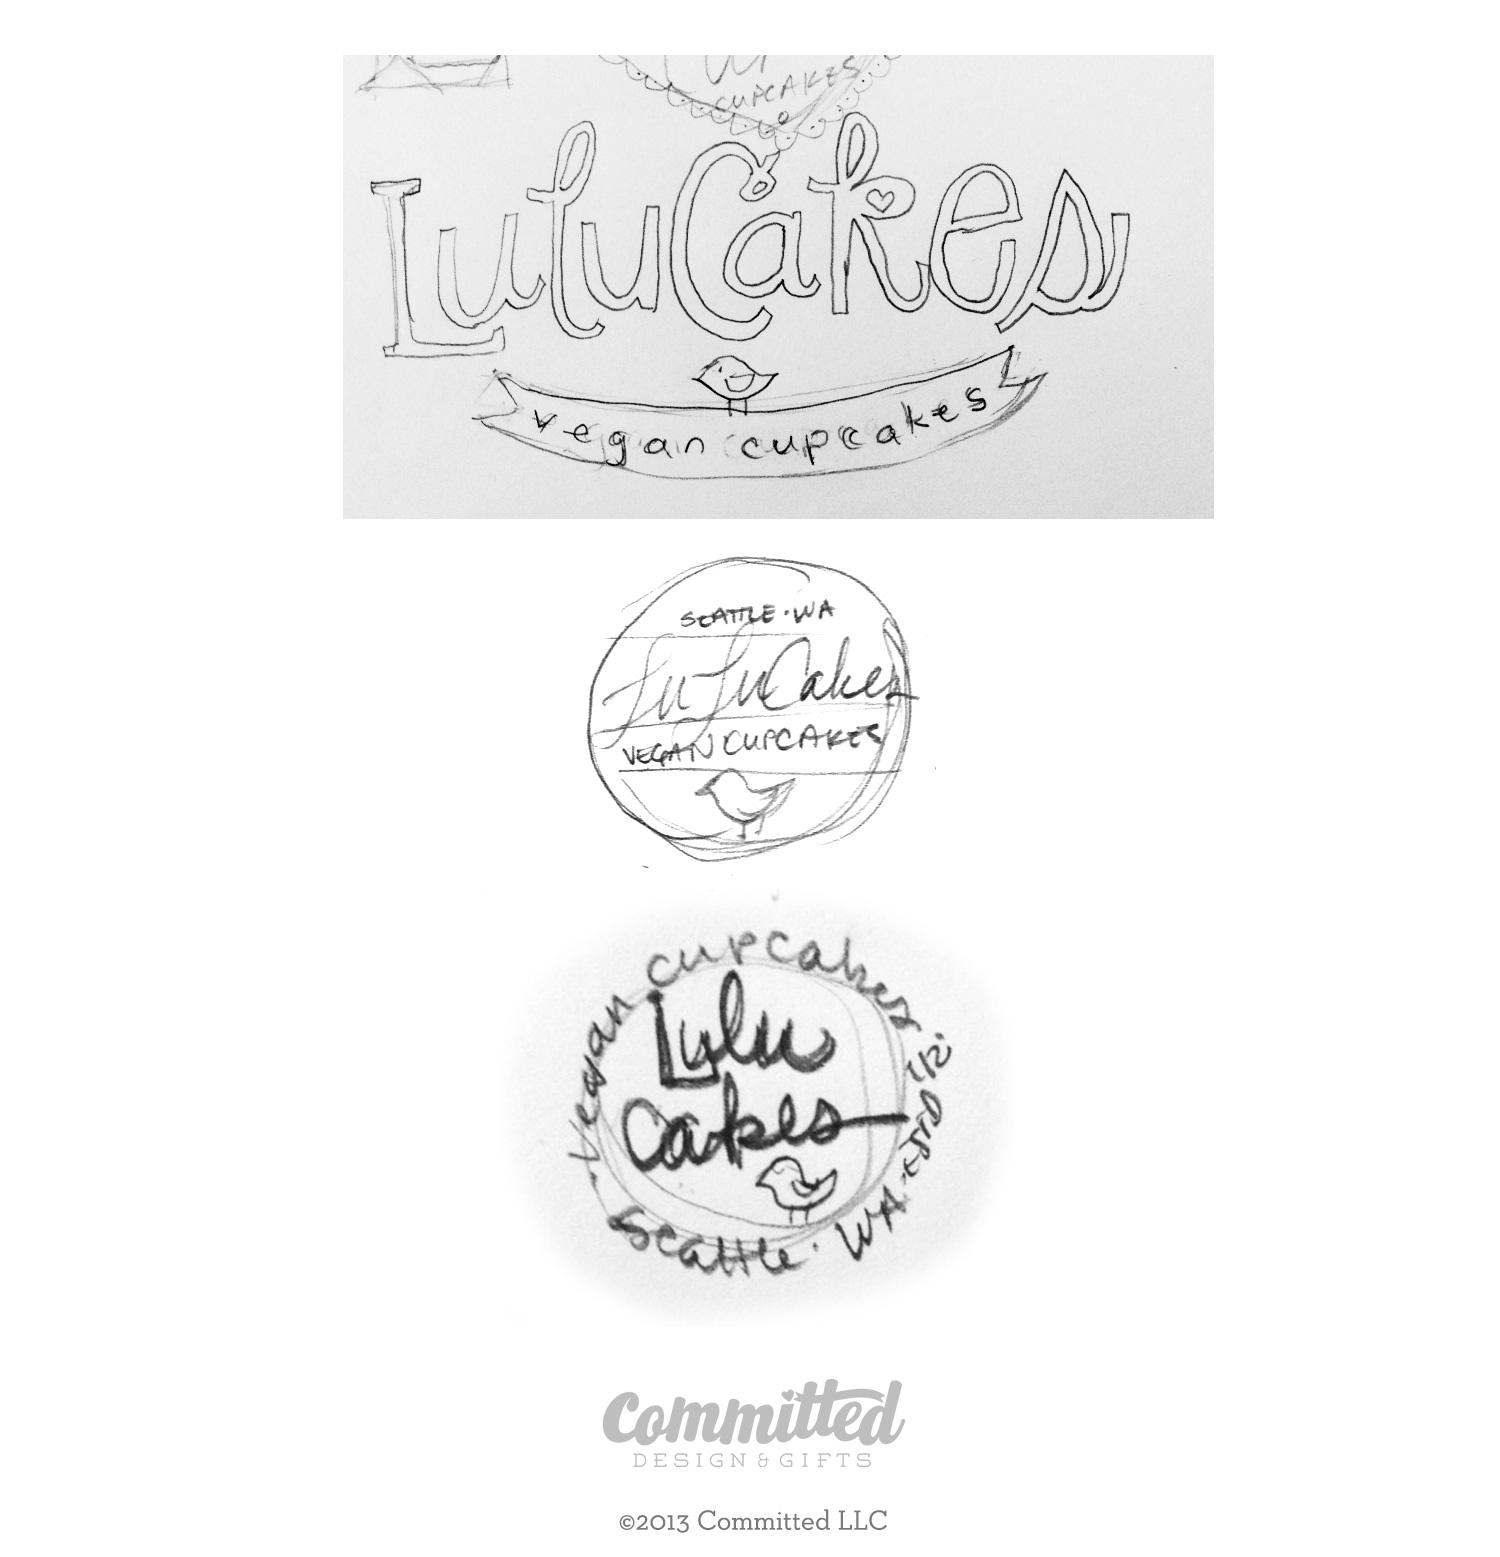 LuLuCakes by Claudina - image 3 - student project